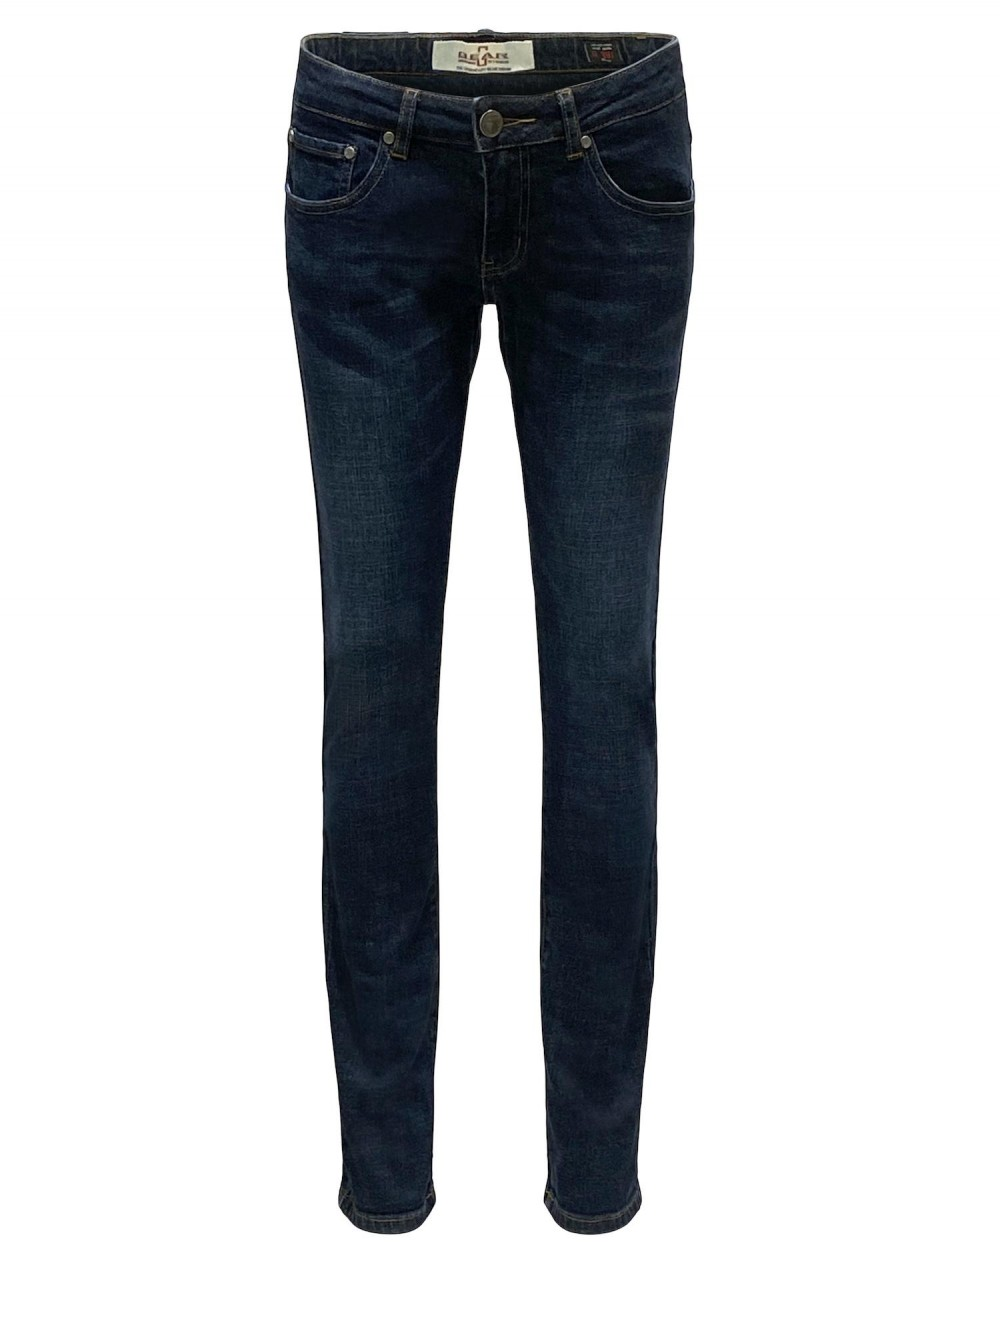 Jeans JSM319 stretch slim fit dr.blue